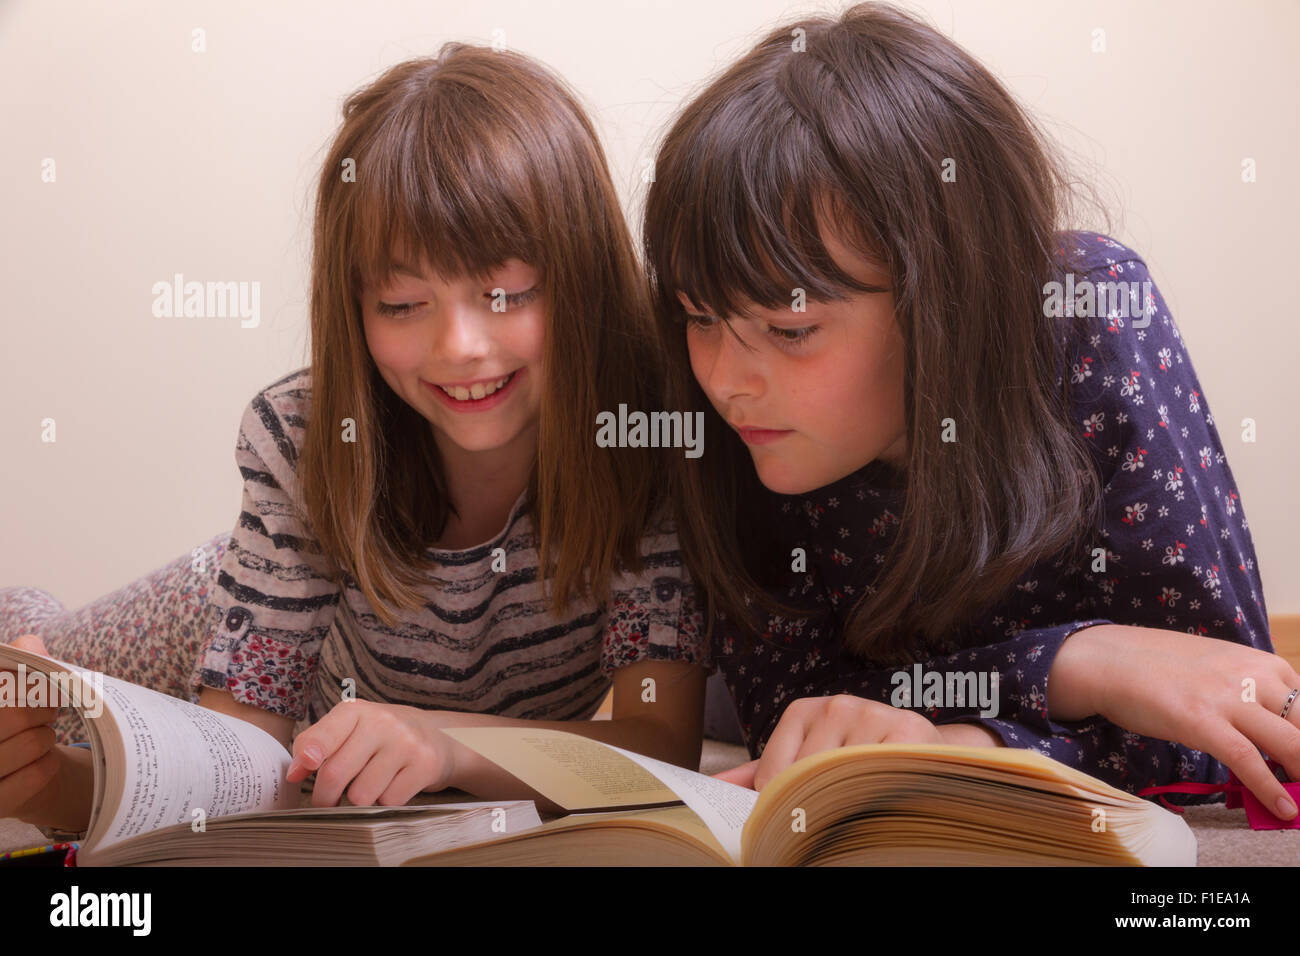 2 young white 9 & 11 year old girls on the floor reading books as one smiles and points to something funny in - Stock Image